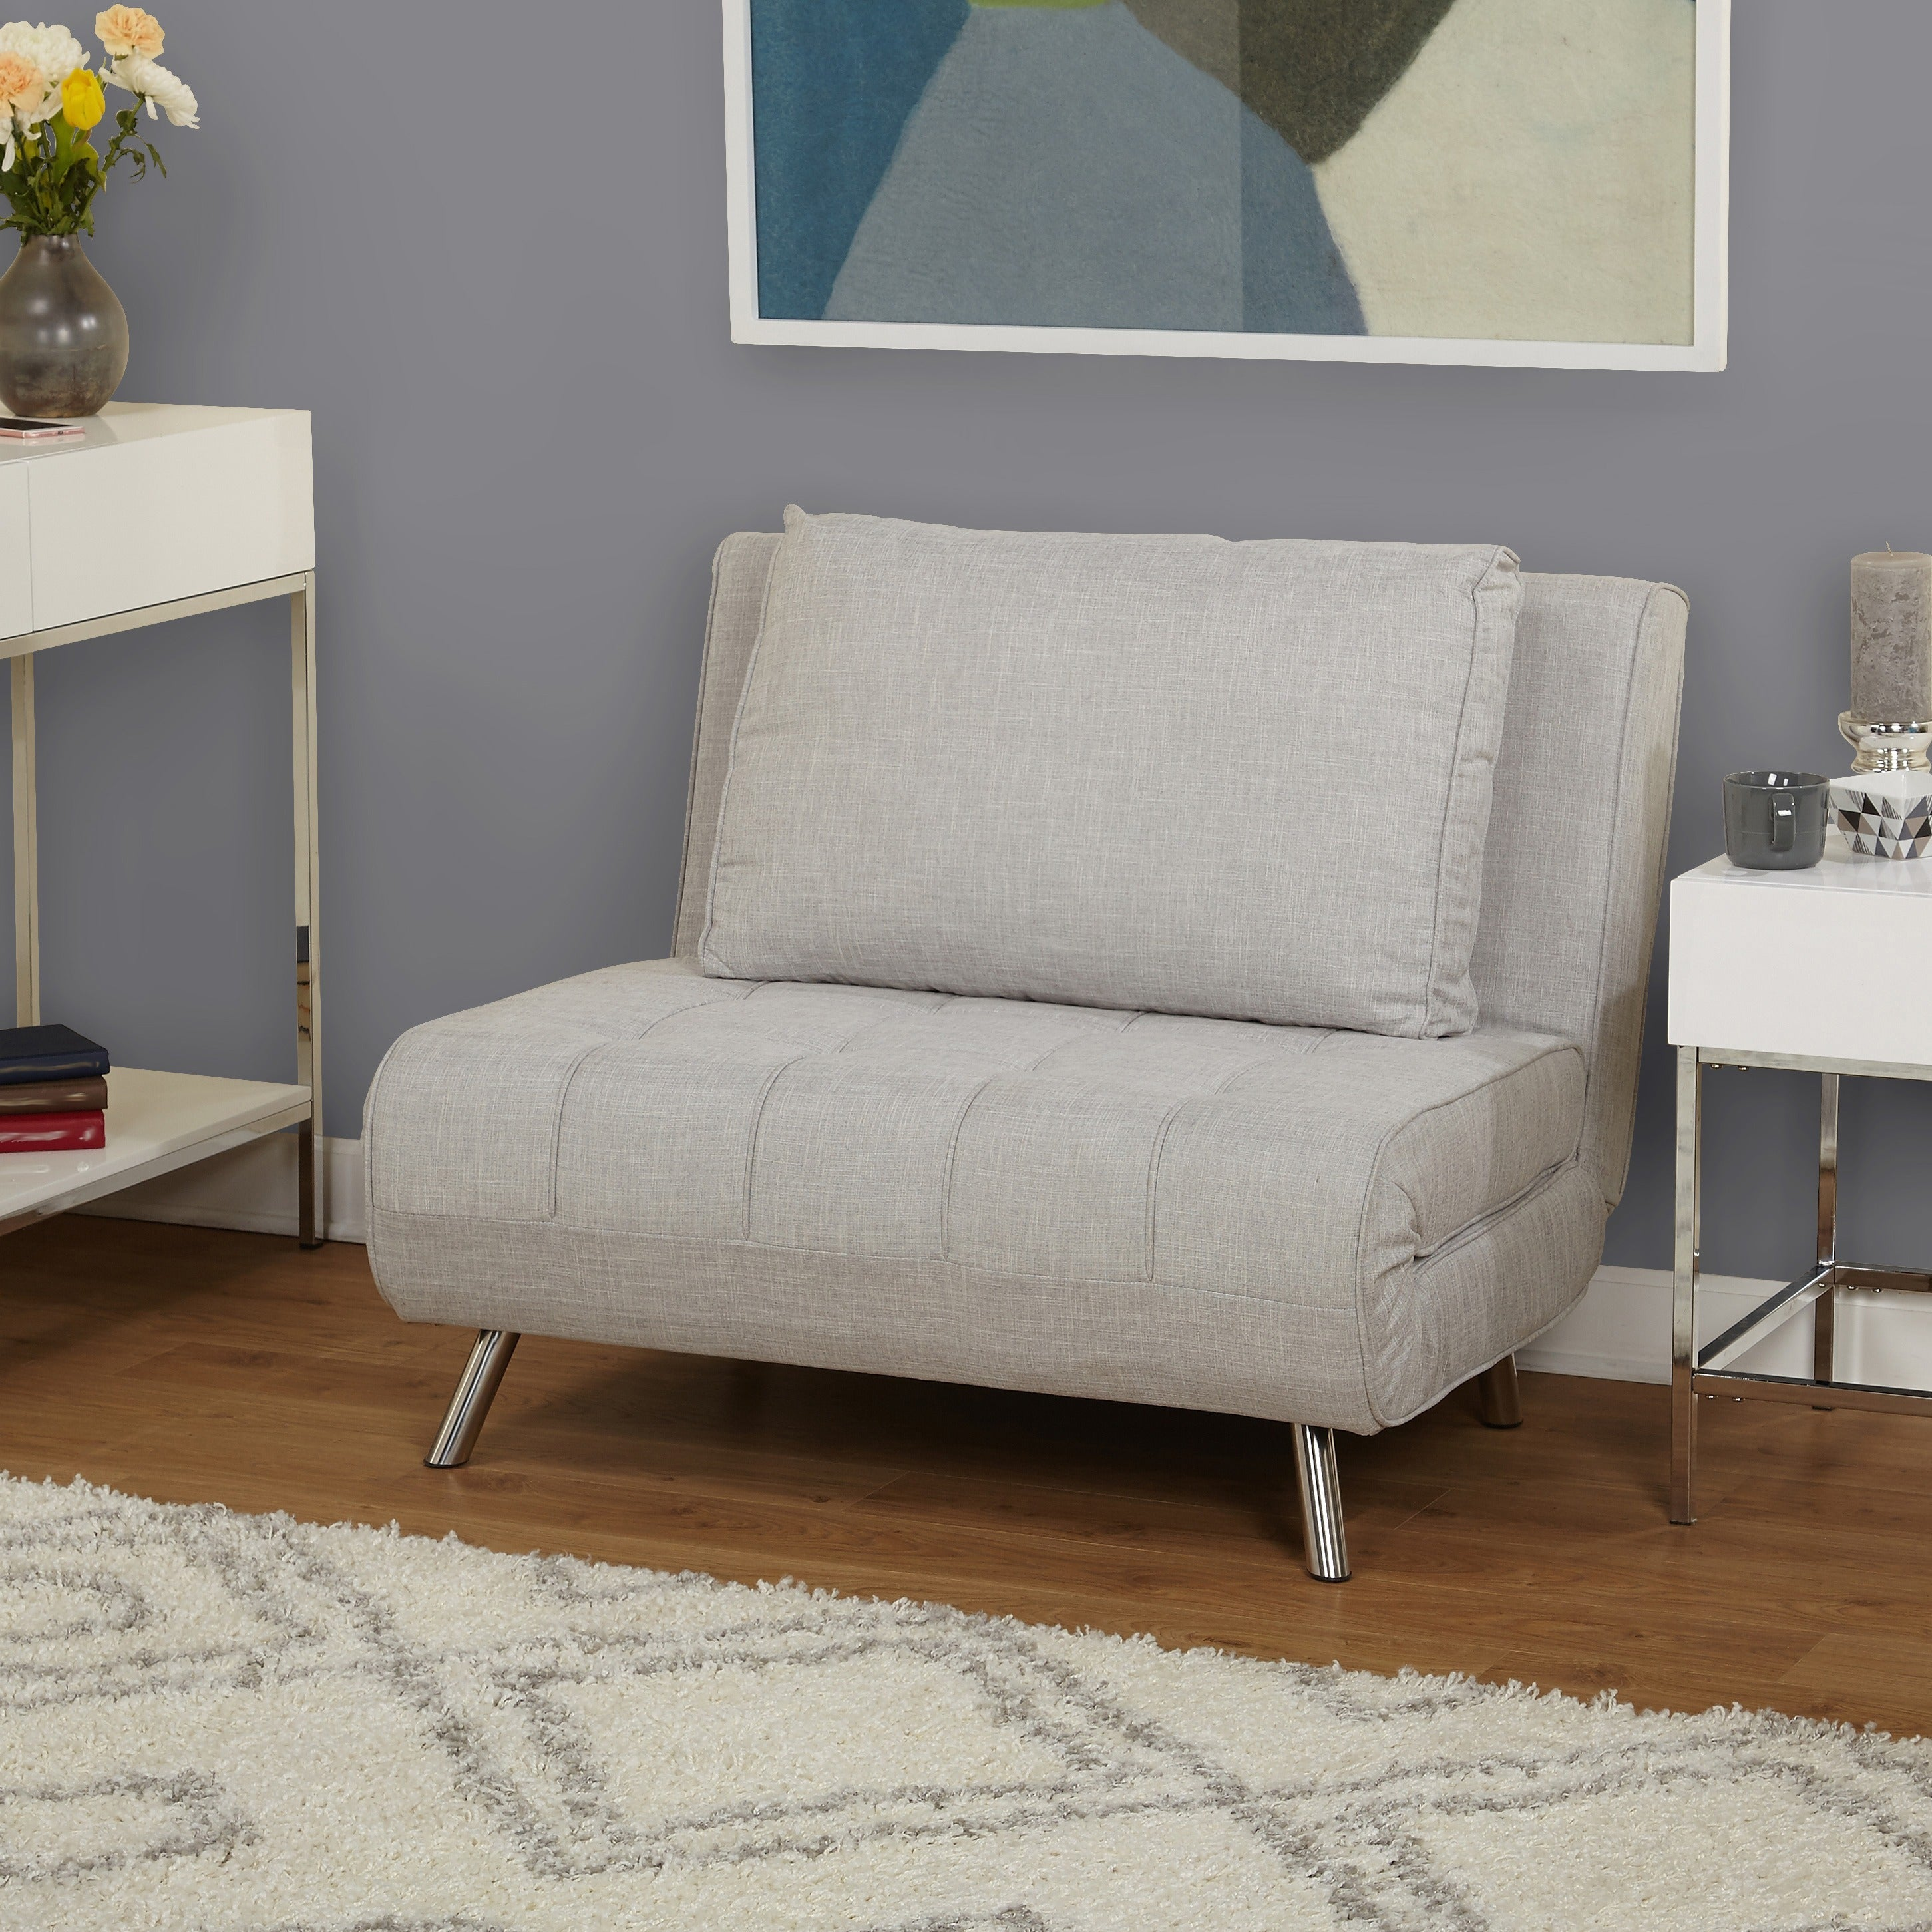 Simple Living Victor Futon / Chair bed (Futon / Chair Bed...